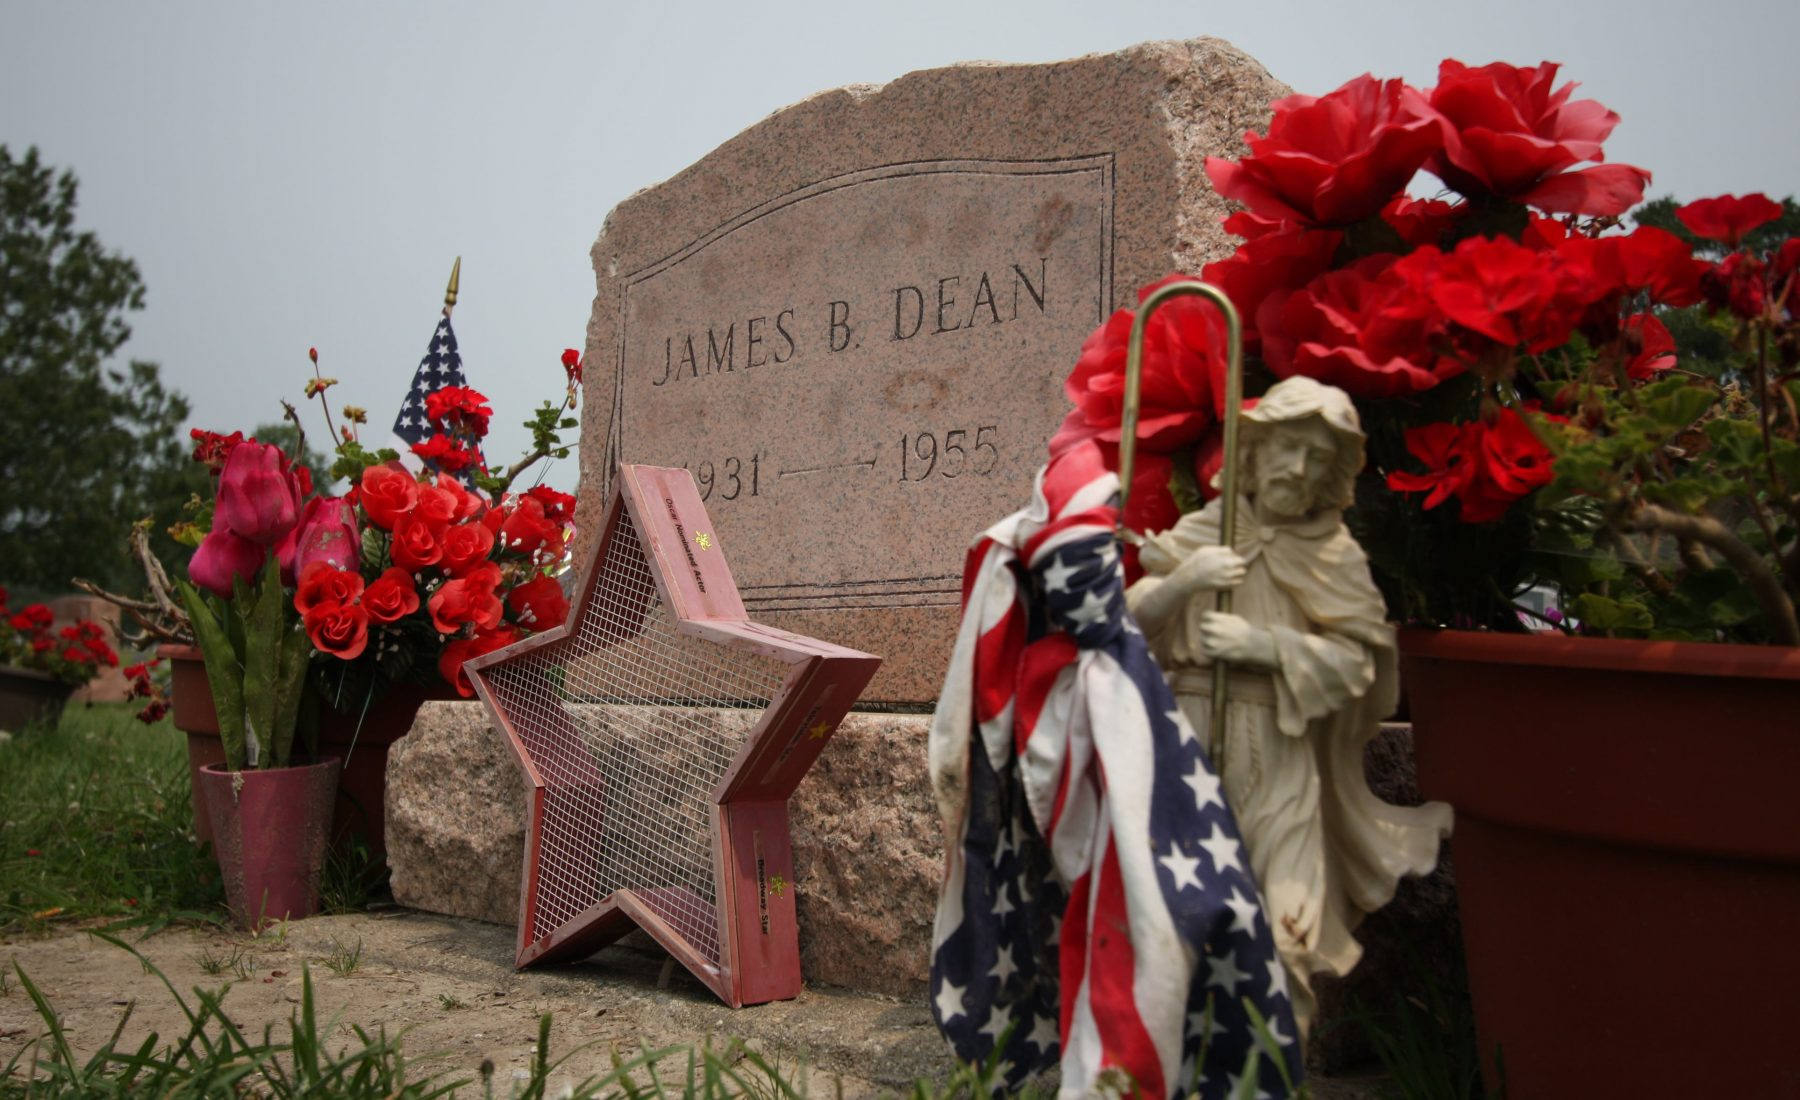 James Dean's Grave, Fairmount, Indiana